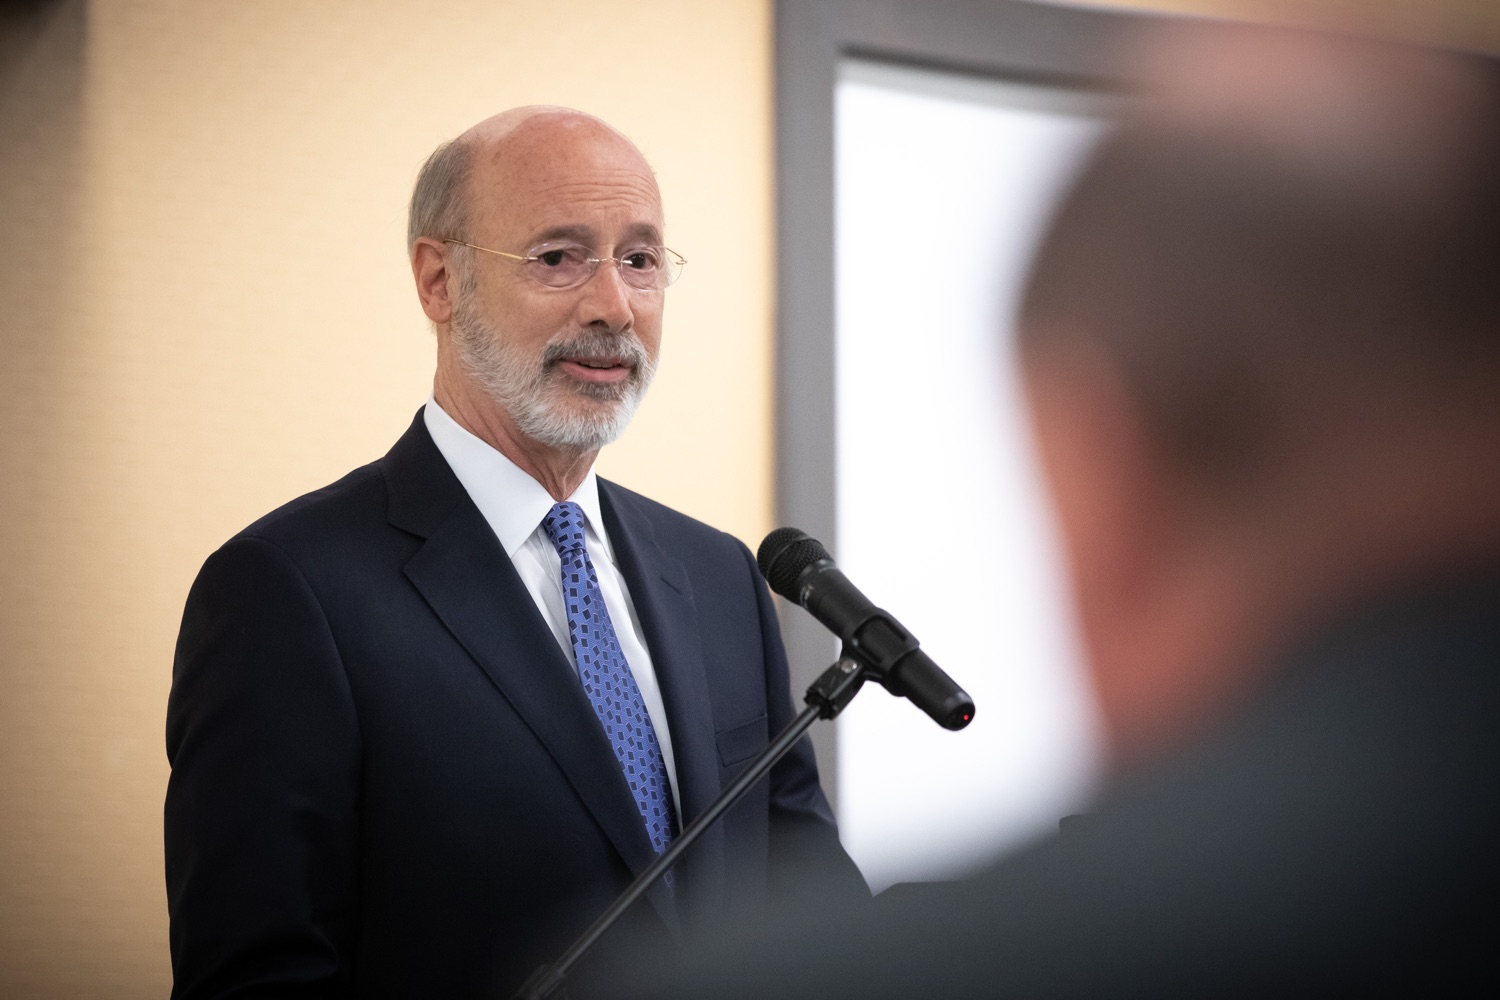 "<a href=""http://filesource.abacast.com/commonwealthofpa/photo/17598_gov_charter_schools_dz_019.jpg"" target=""_blank"">⇣ Download Photo<br></a>Pennsylvania Governor Tom Wolf speaks about charter school reform at a meeting of the Pennsylvania Association of School Administrators.  Governor Tom Wolfs commonsense plan to improve the educational quality of charter schools and control rising costs will save nearly $280 million a year, the governor told the Pennsylvania Association of School Administrators today. The governor has a three-part plan to fix Pennsylvanias charter school law which is regarded as one of the worst in the nation.  - Harrisburg, PA. Friday, November 15, 2019."